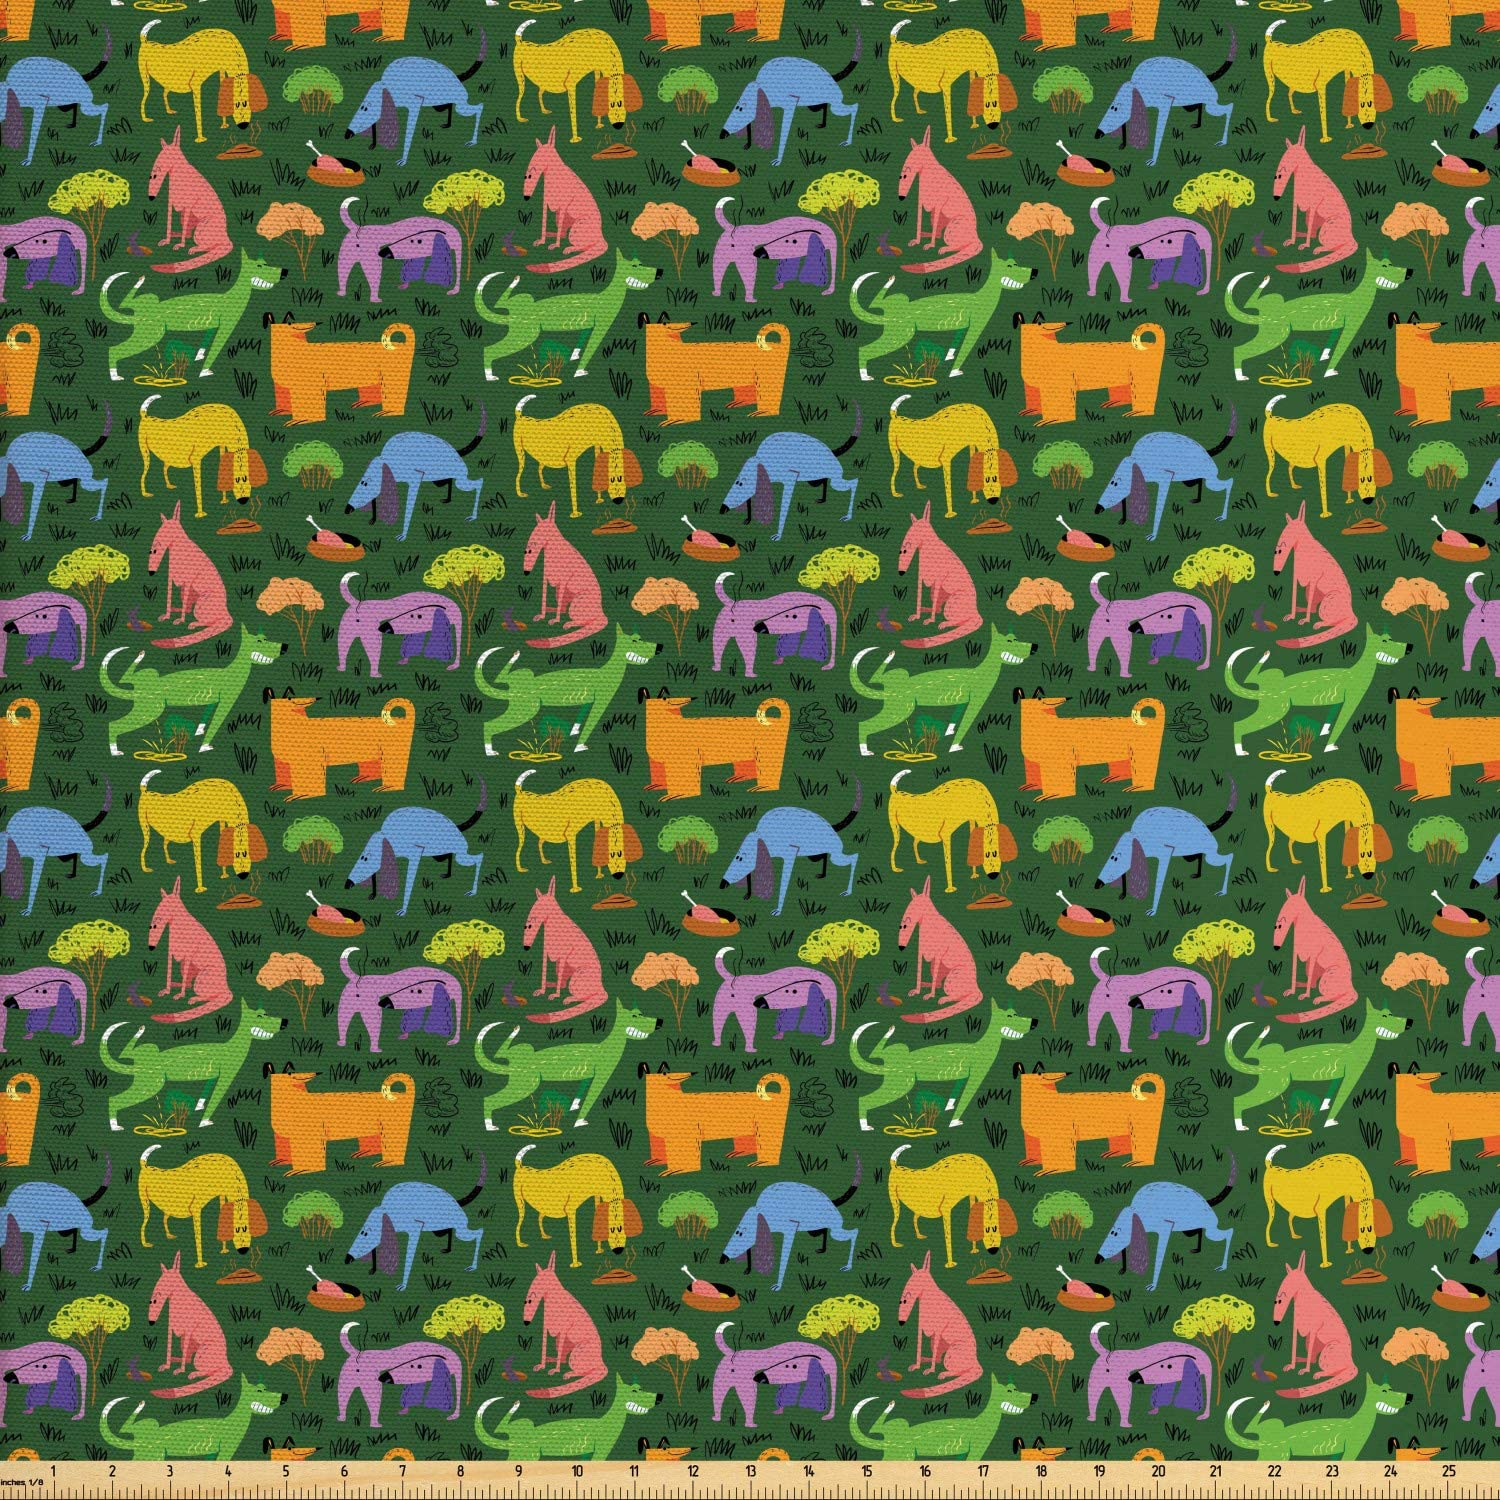 Ambesonne Dog Fabric by The Yard, Illustration of Various Colorful Animals Assorted Cartoon Style Pets, Decorative Fabric for Upholstery and Home Accents, 1 Yard, Hunter Green Multicolor